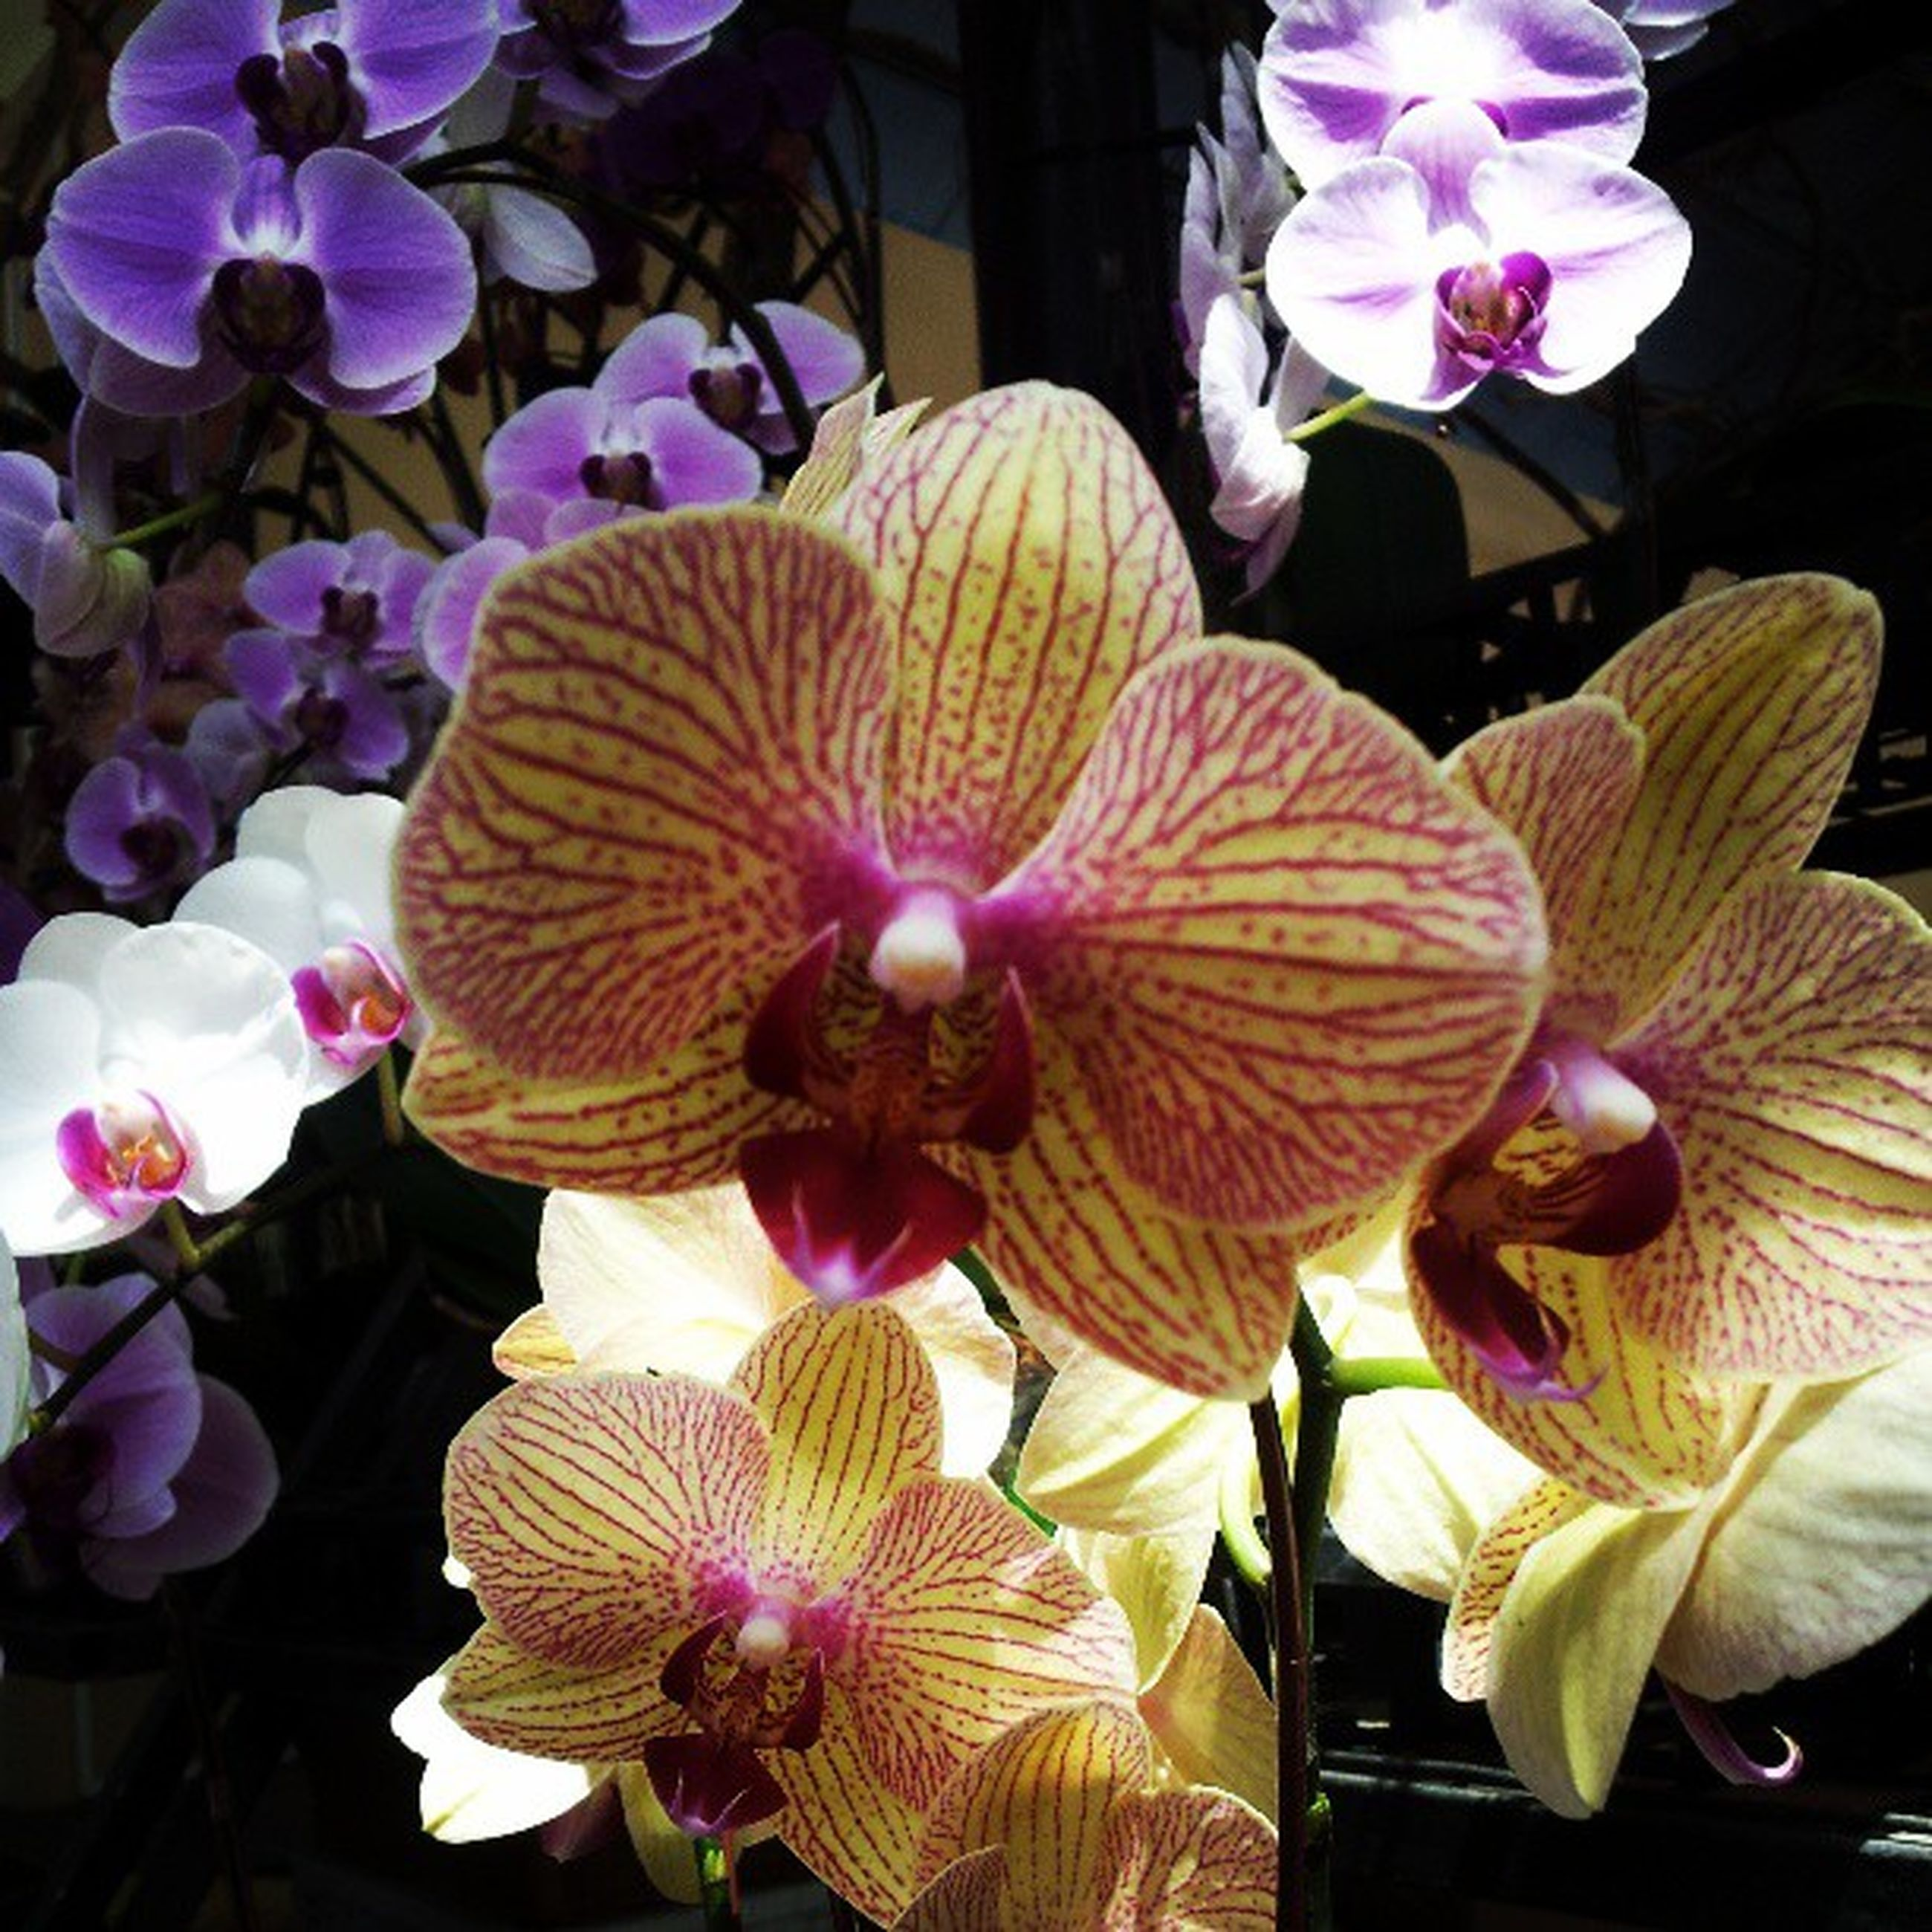 flower, petal, freshness, fragility, flower head, beauty in nature, growth, orchid, nature, blooming, indoors, close-up, purple, plant, high angle view, in bloom, pollen, no people, white color, stamen